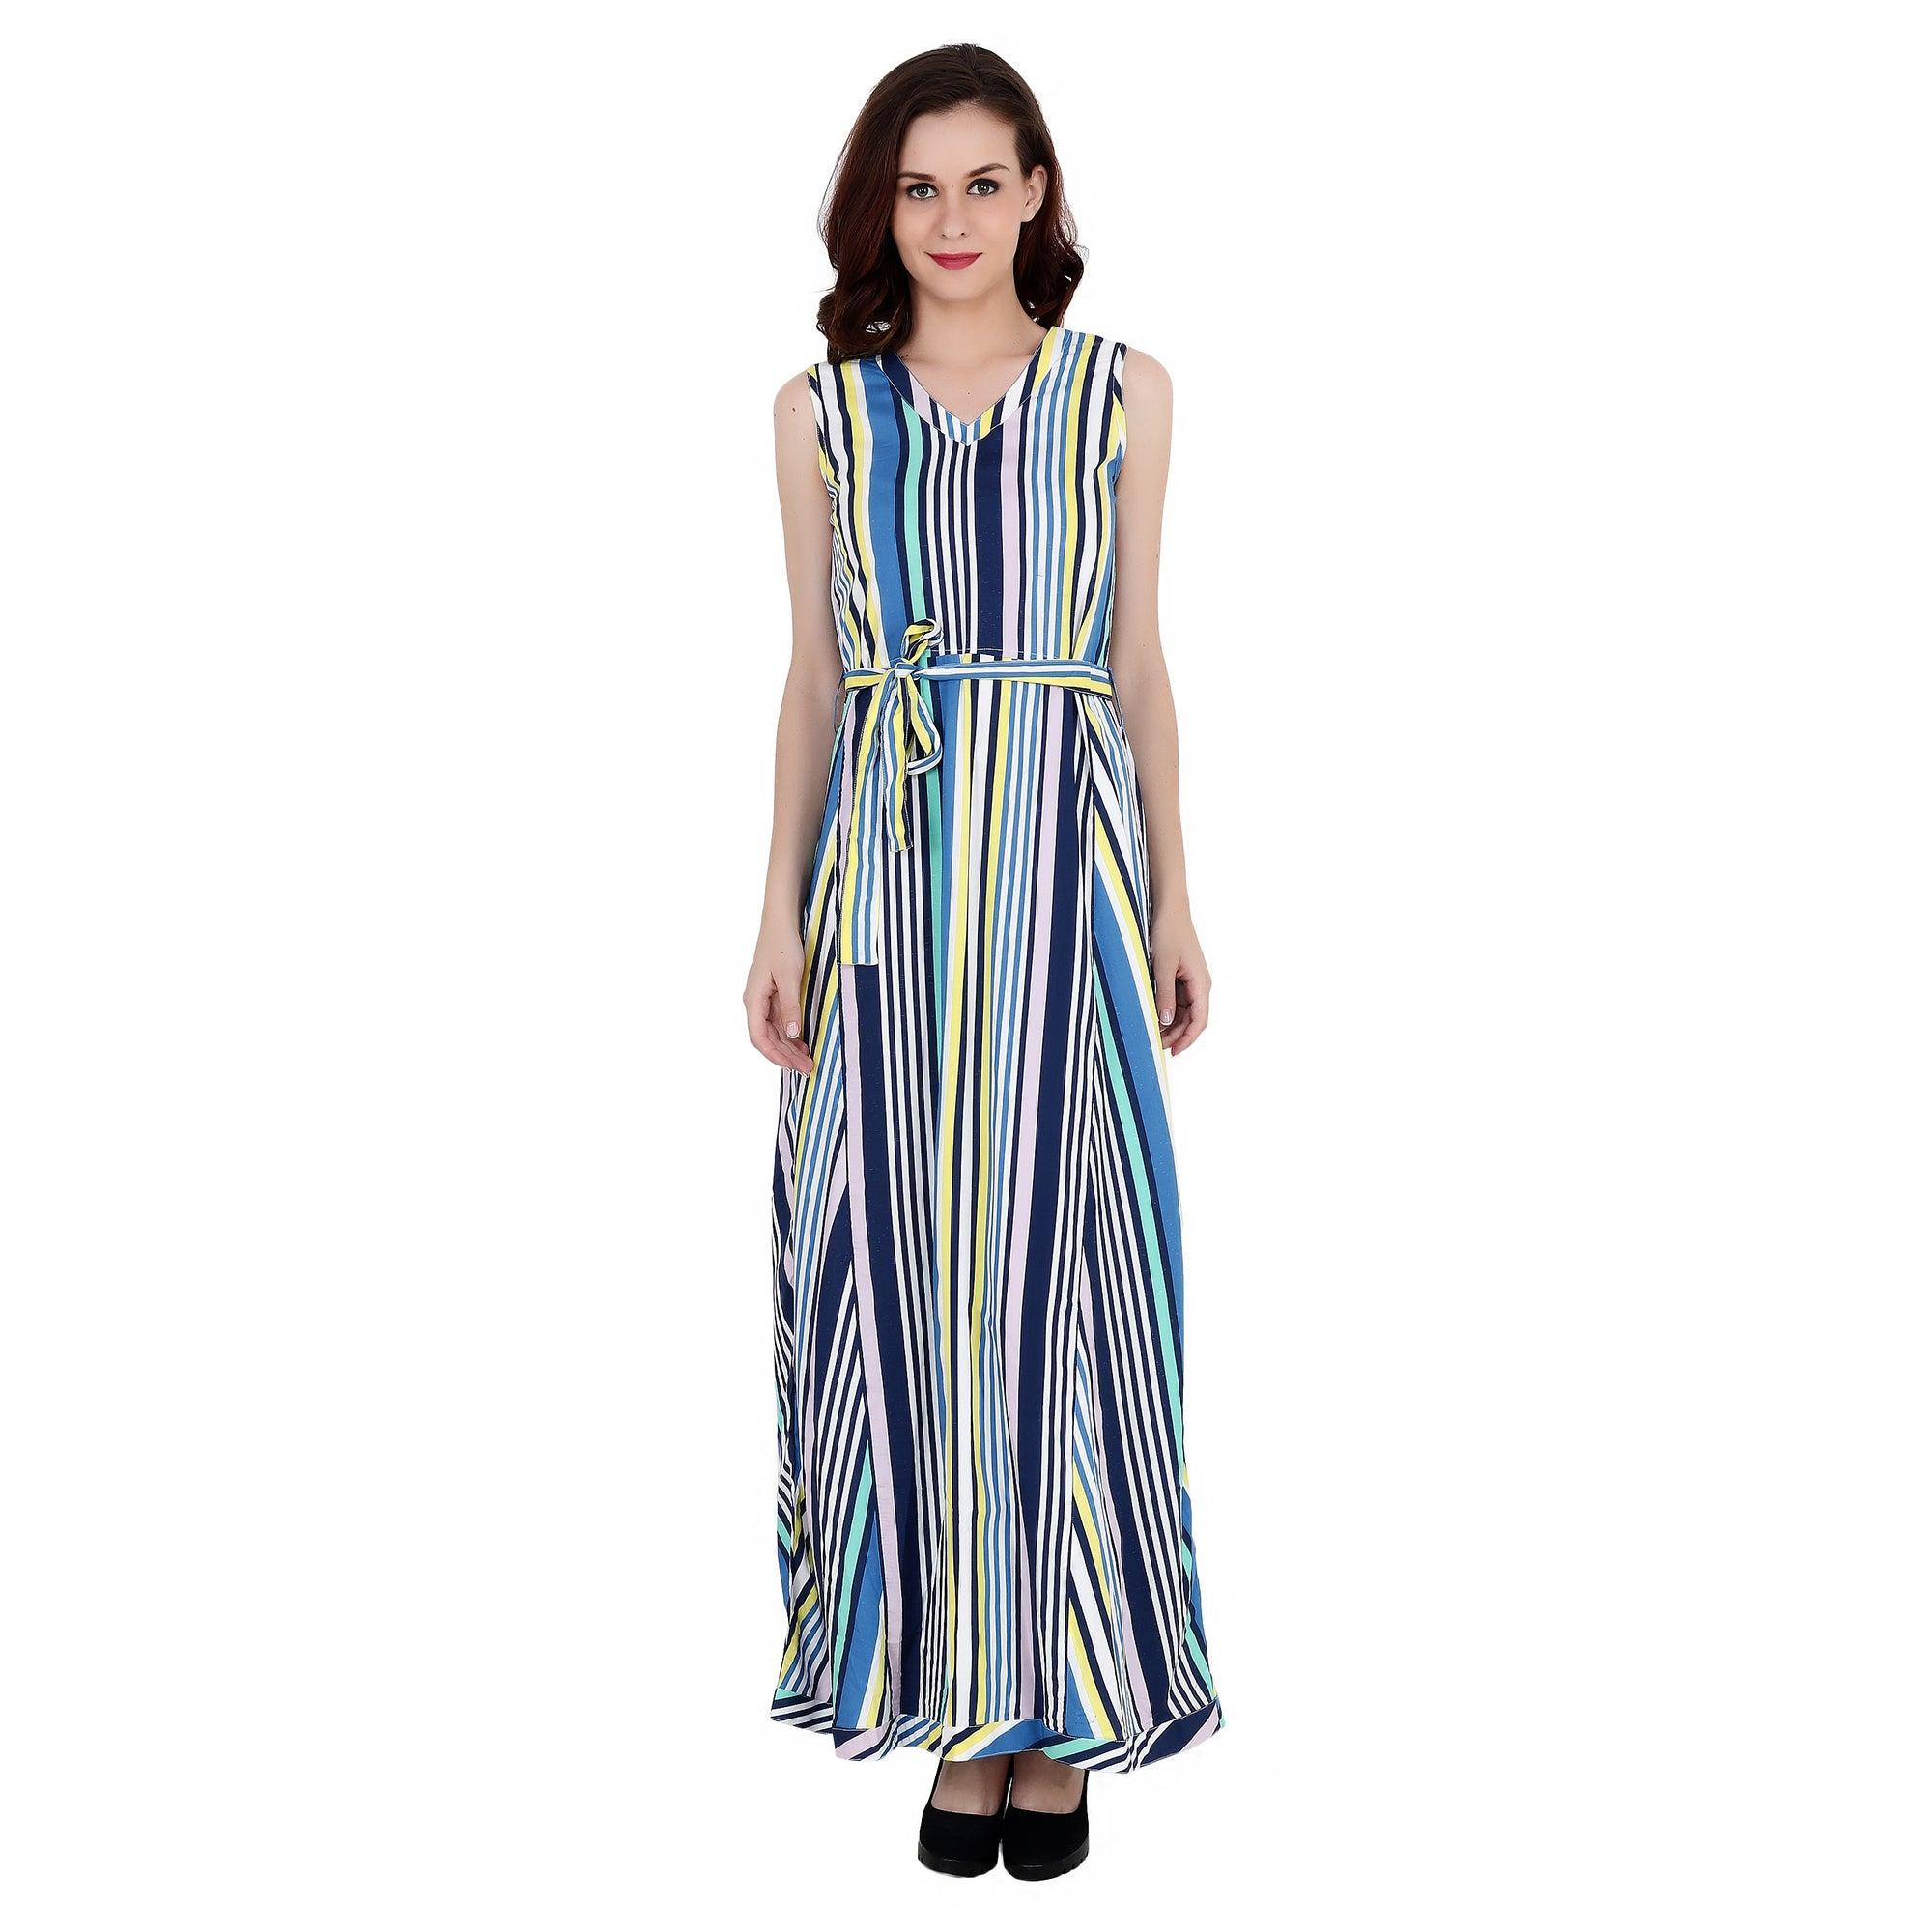 all size, ANKLE, apella, BELL SHAPED, best online store, cotton, Dress, dresses online, FLARED, Modal, plus size, quality products, RAYON, reasonable price, skin friendly fabrics, soft cotton